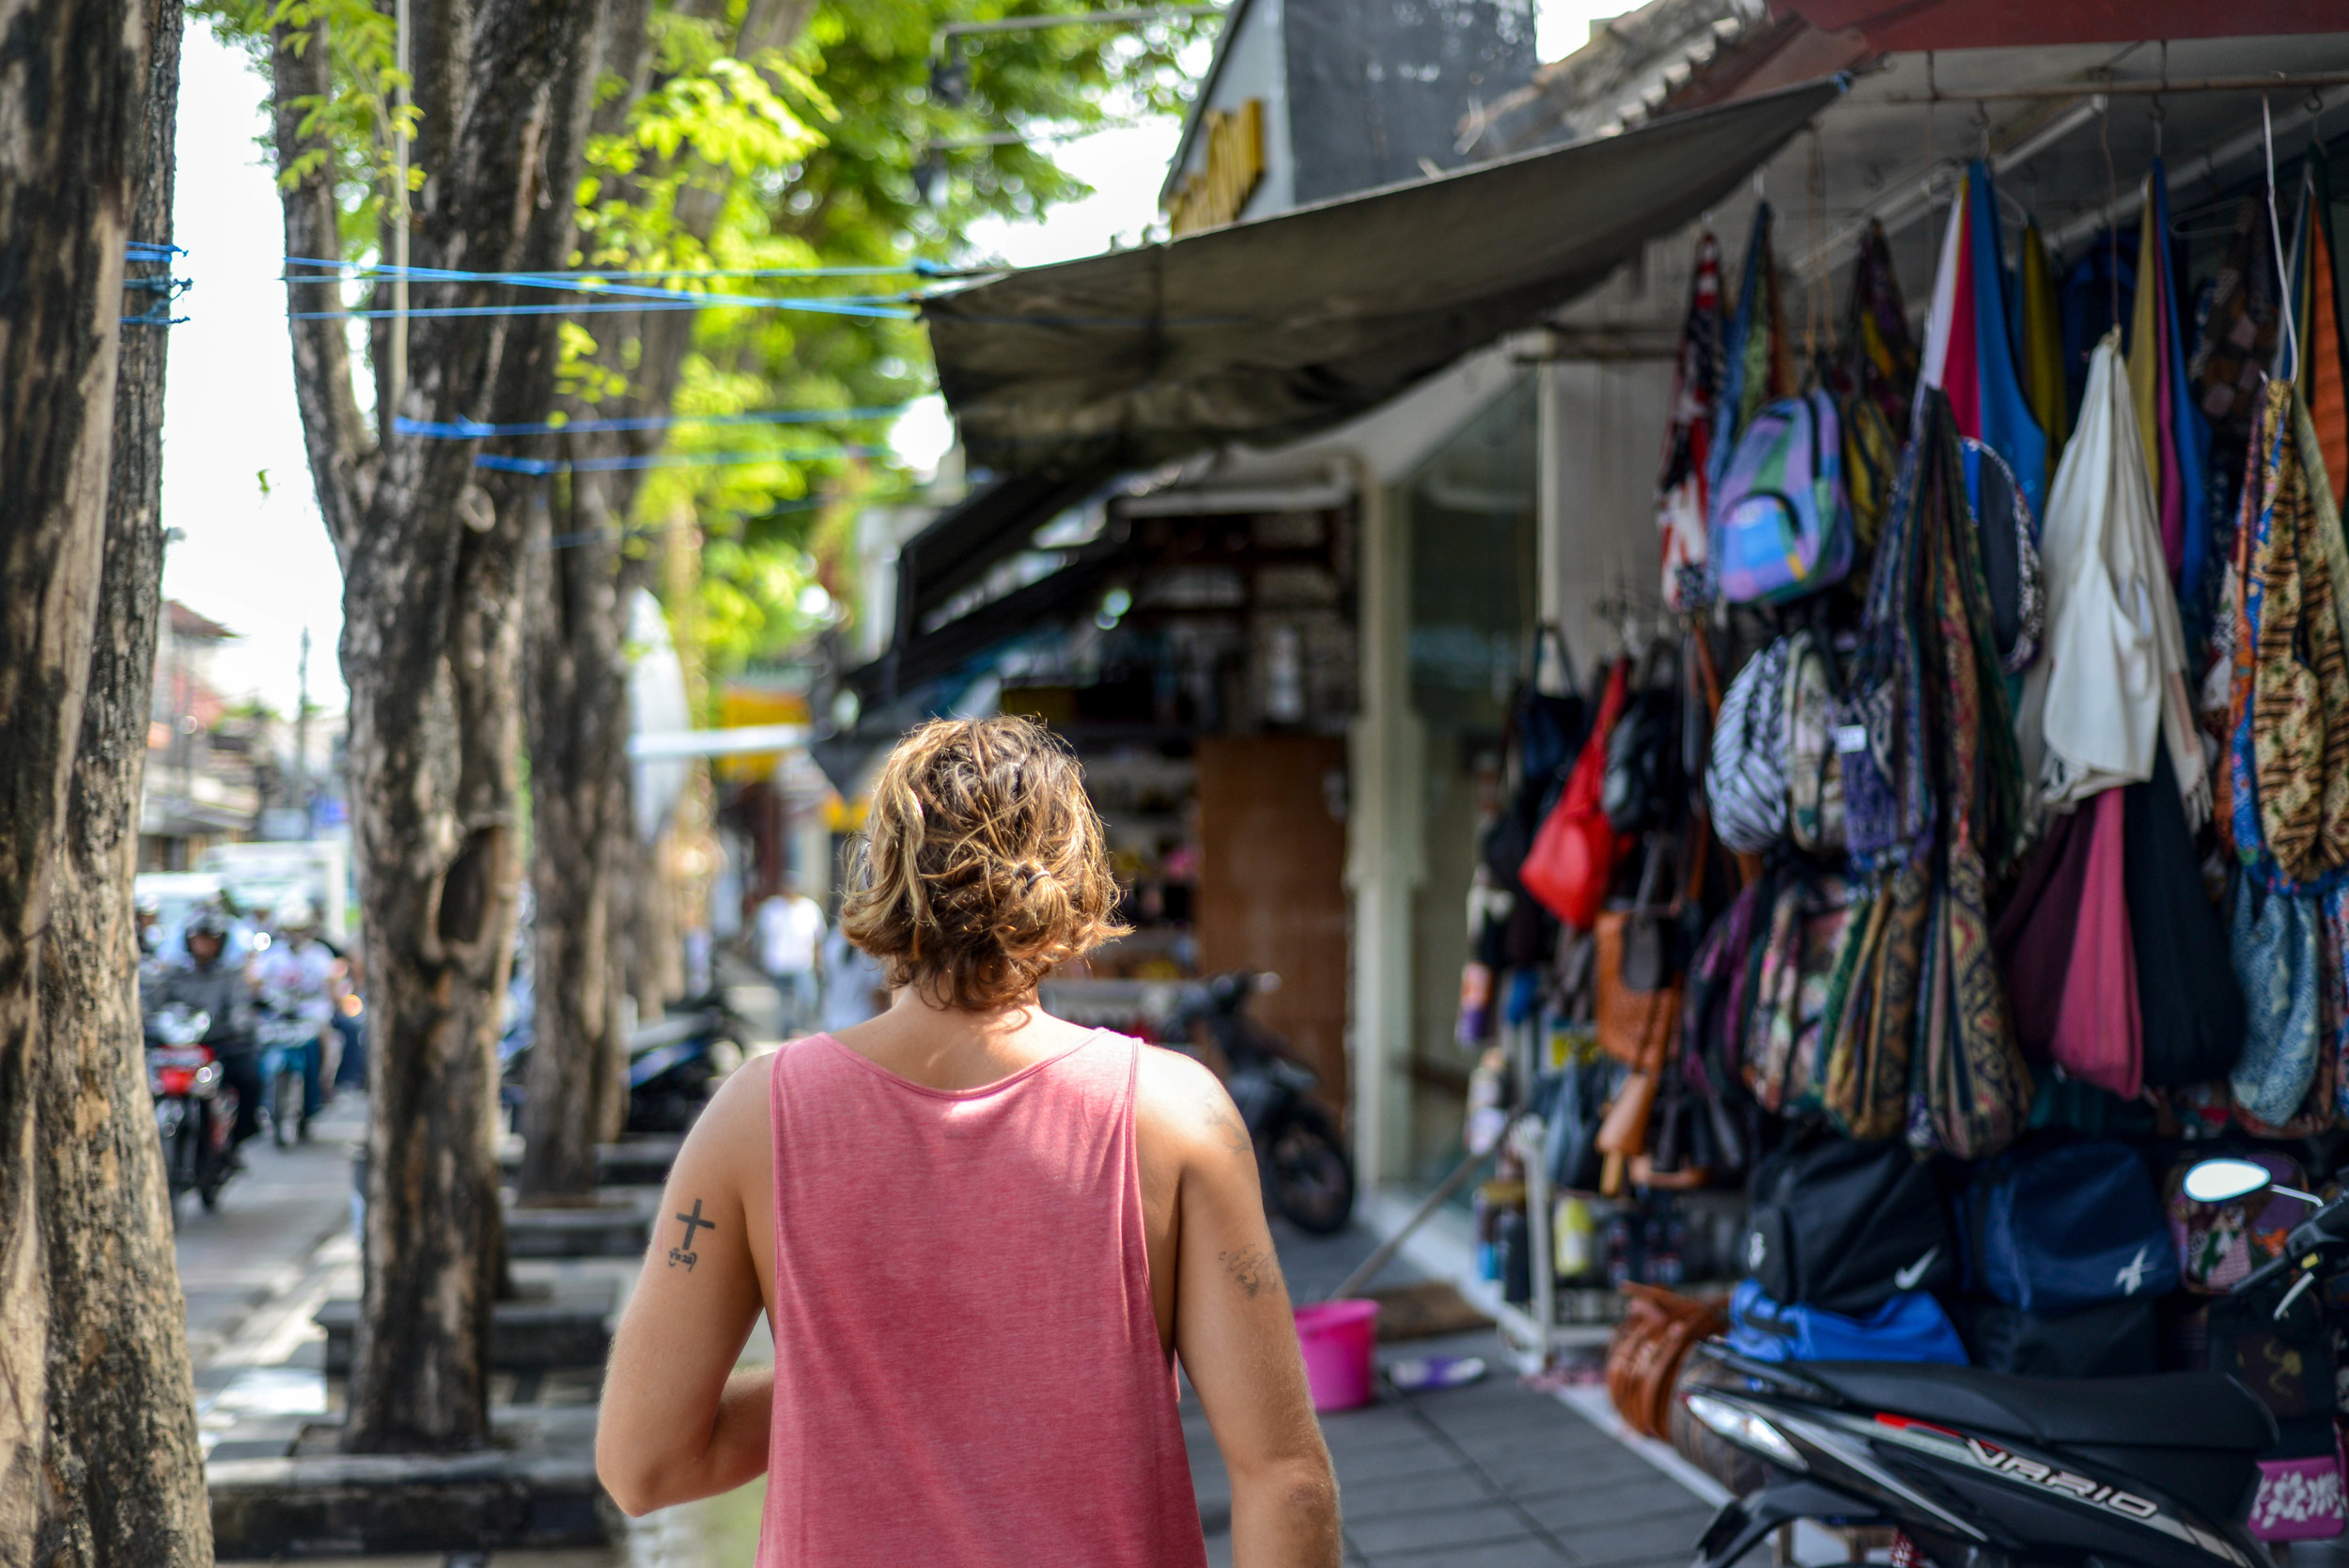 Jonny walking the streets of Kuta.